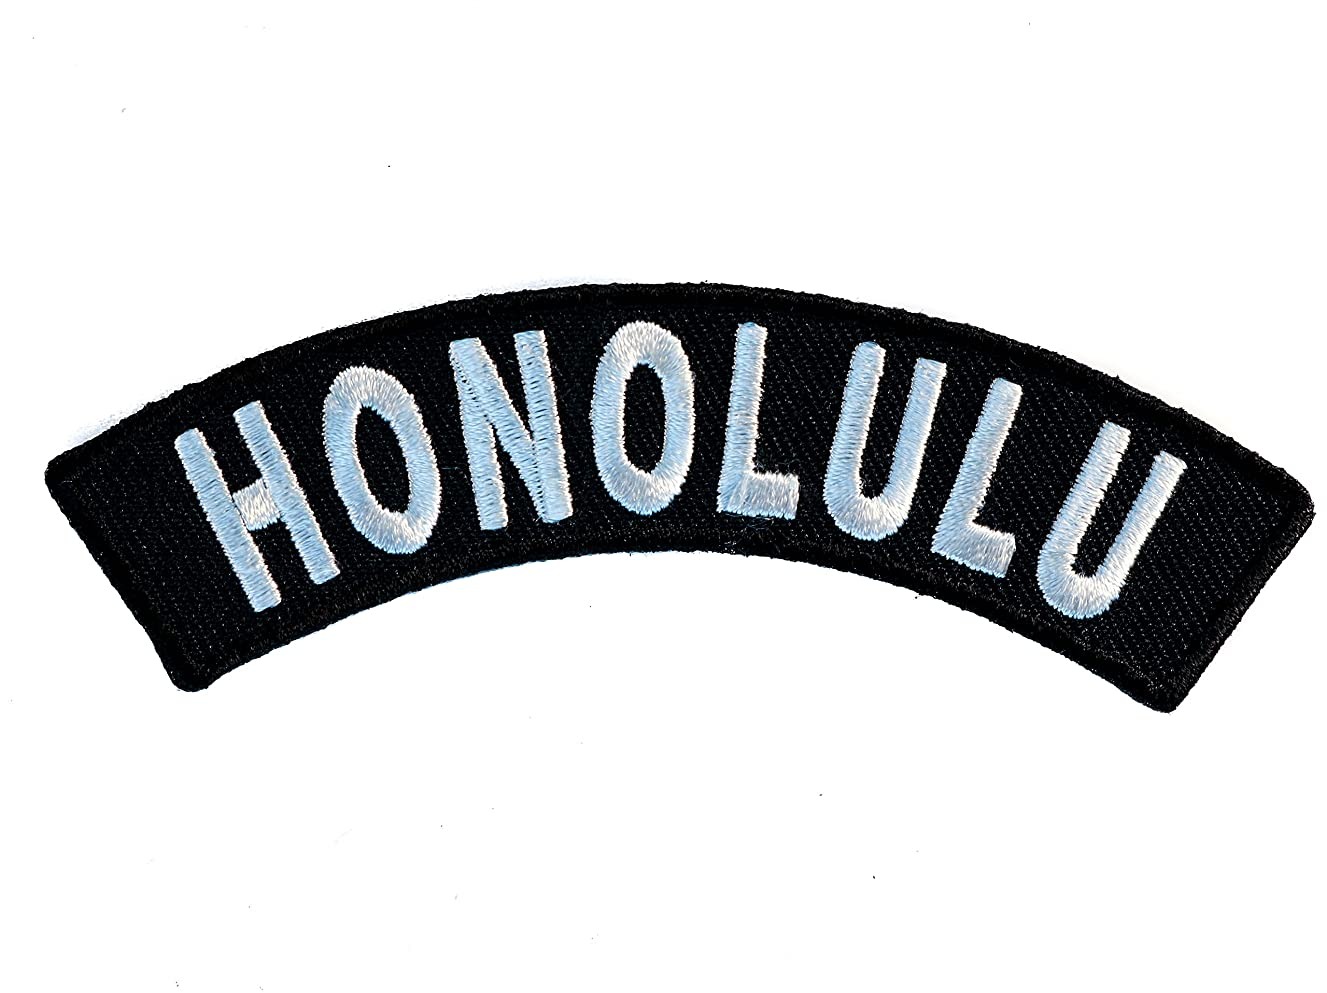 HONOLULU Rocker Embroidered Patch 3 inch IVANP3613